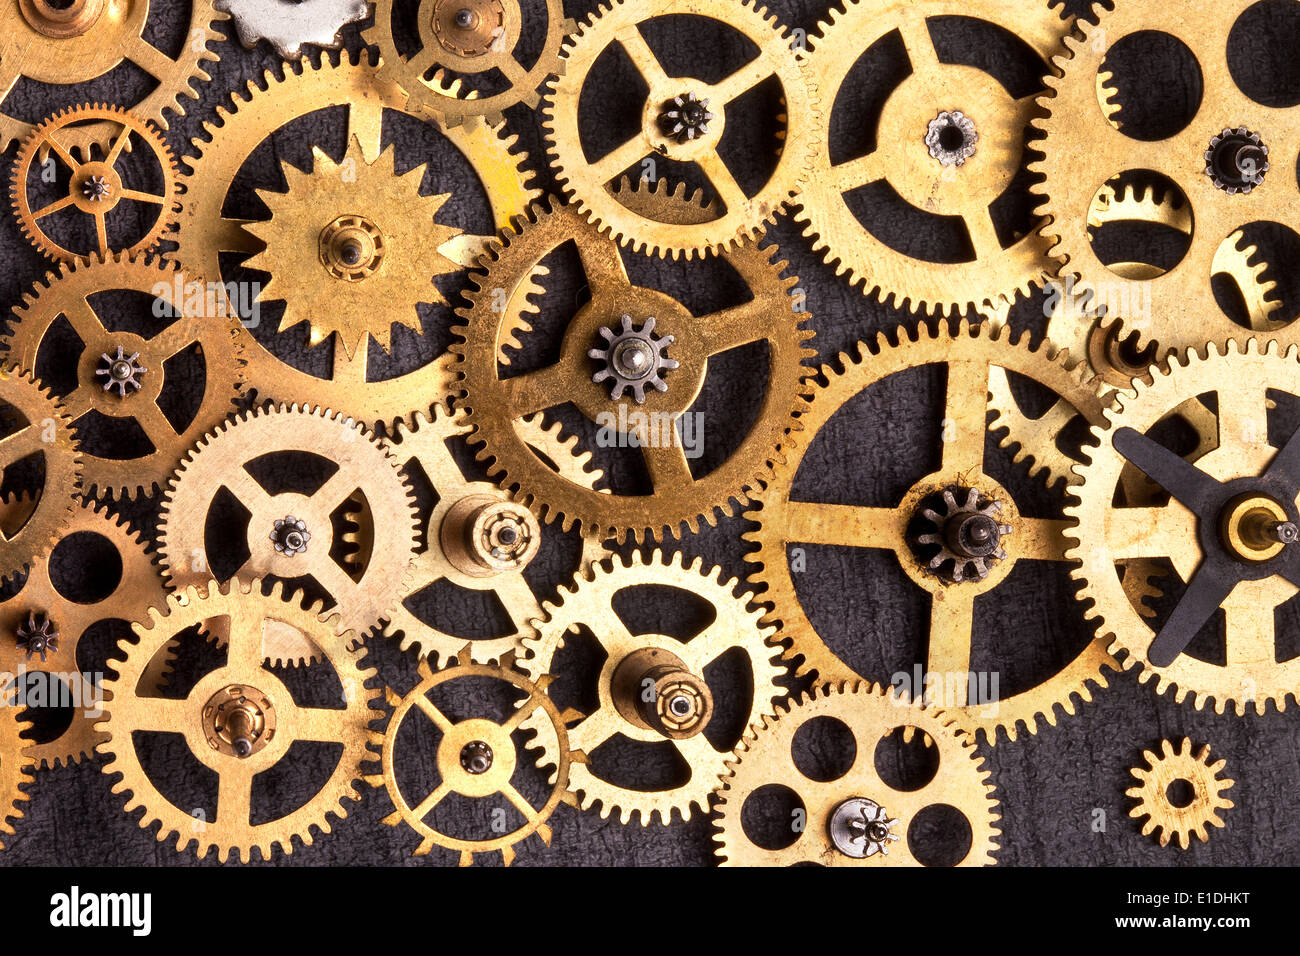 selection of old brass clockwork cogs stock photo 69755388 alamy